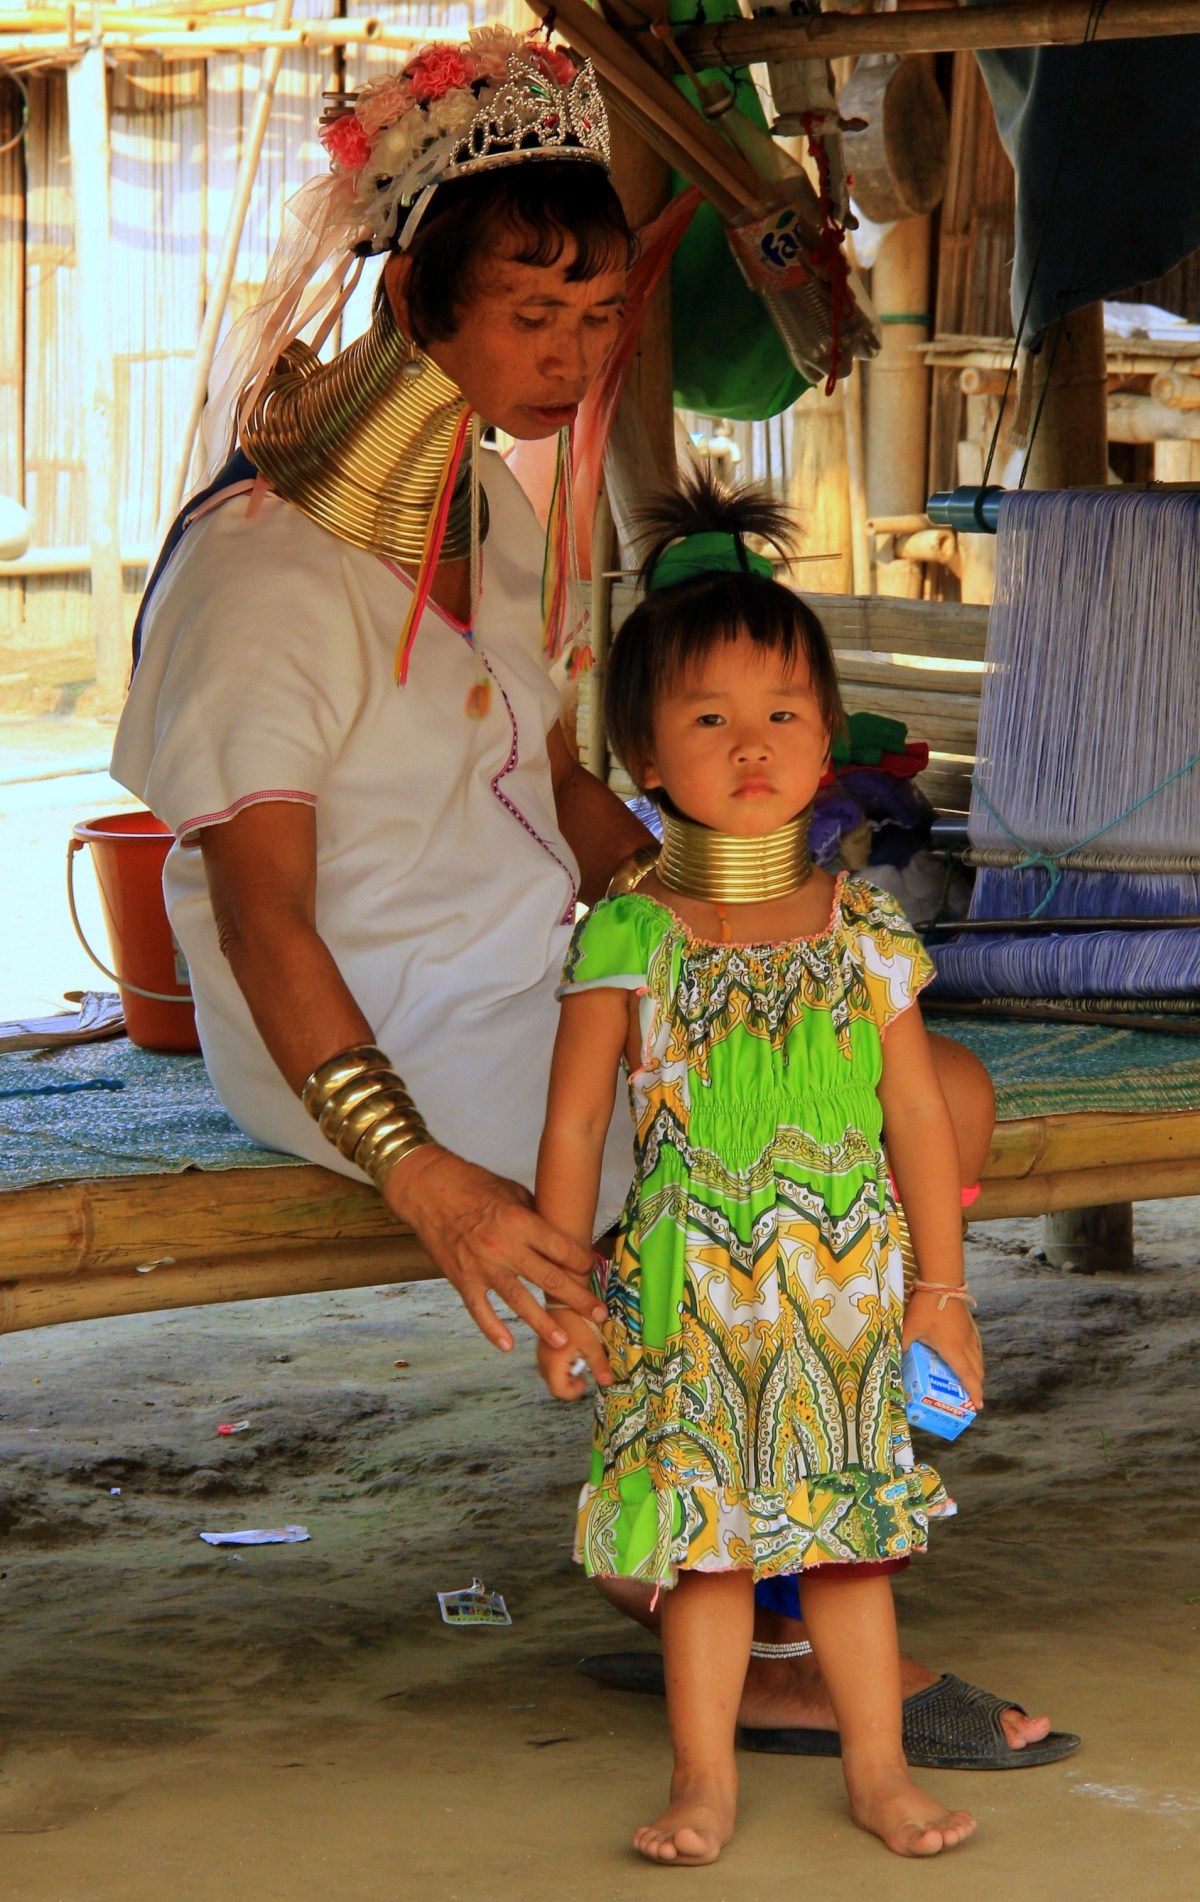 Thai hill tribes tours are often called human zoos